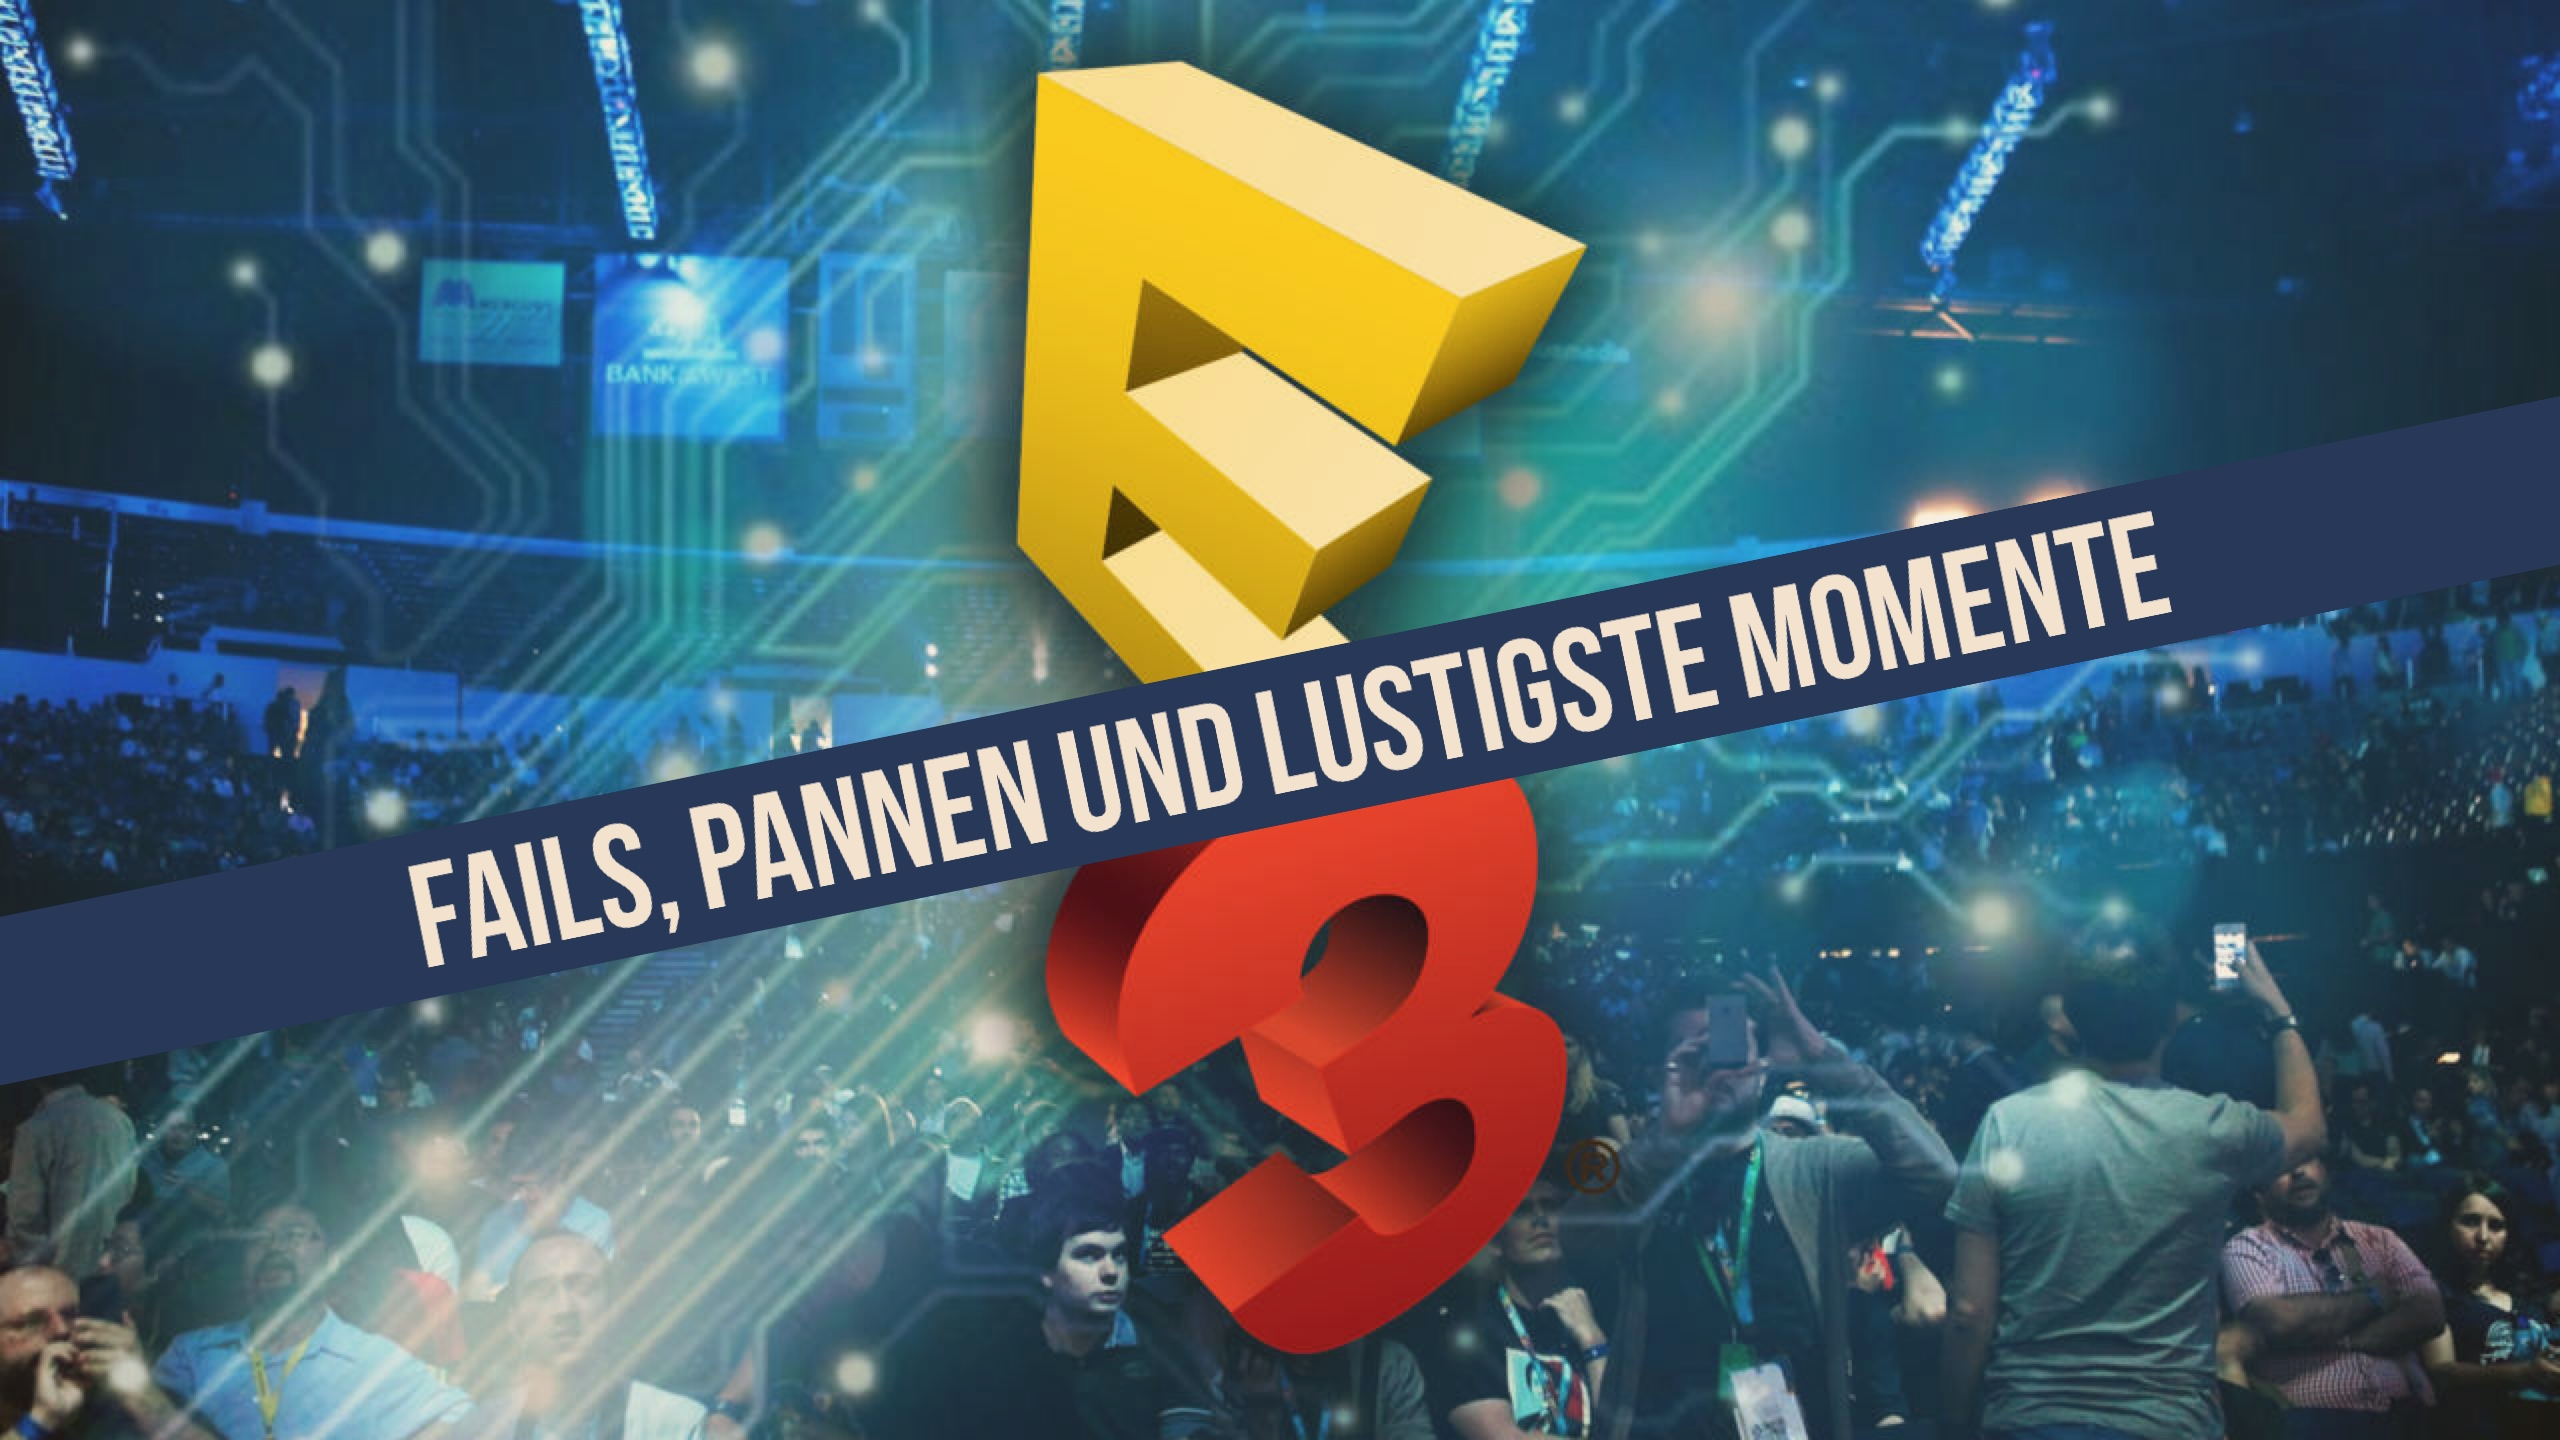 e3-electronic-entertainment-expo-fails-fail-pannen-lustige-momente-nat-games